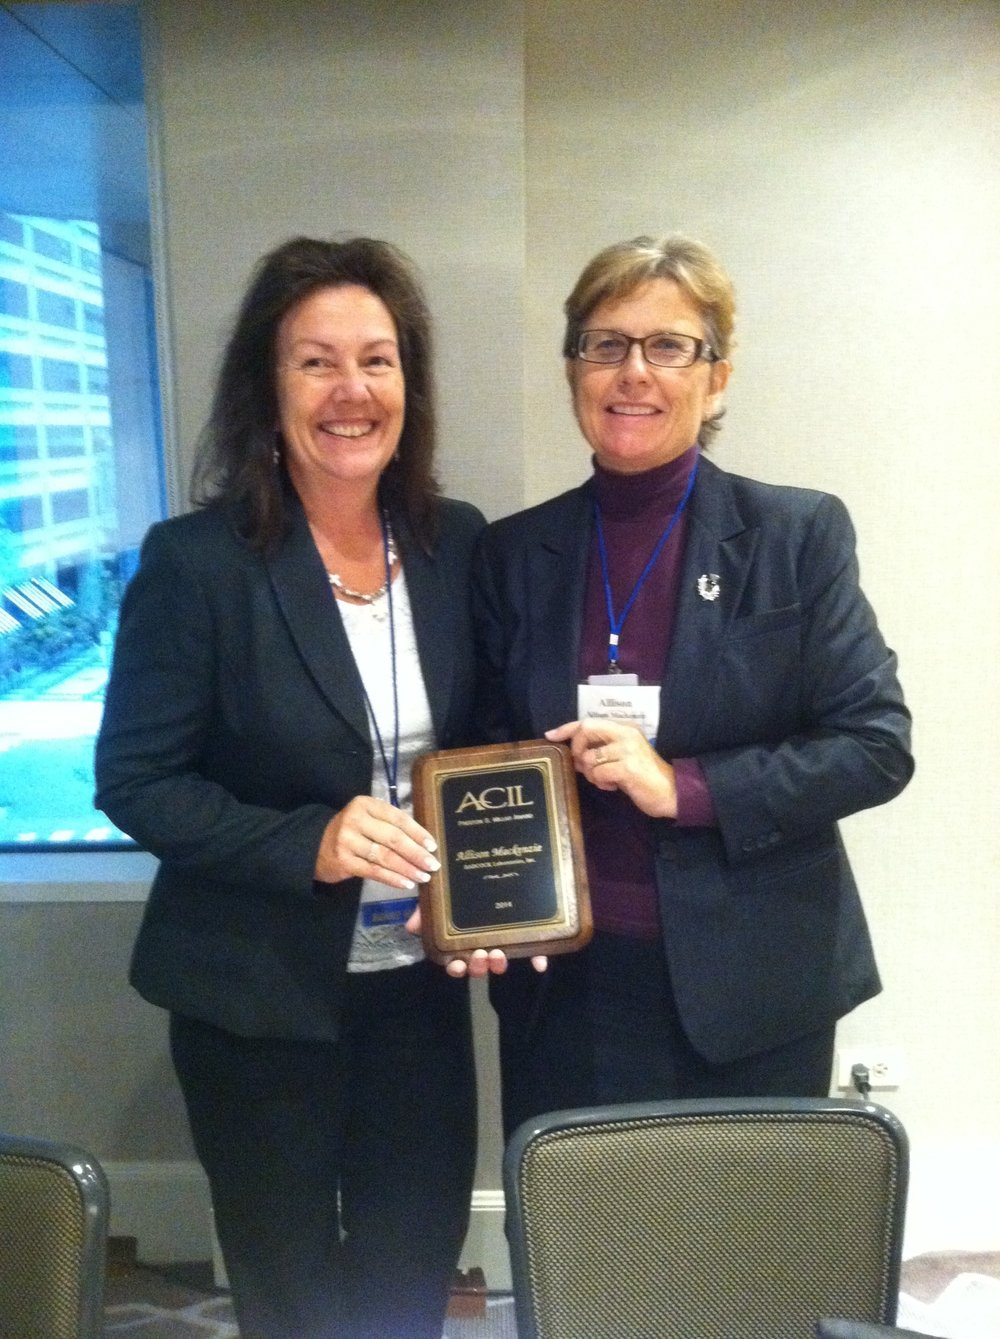 Our CEO Allison Mackenzie is a two-time recipient of the prestigious Preston Millar Award from ACIL